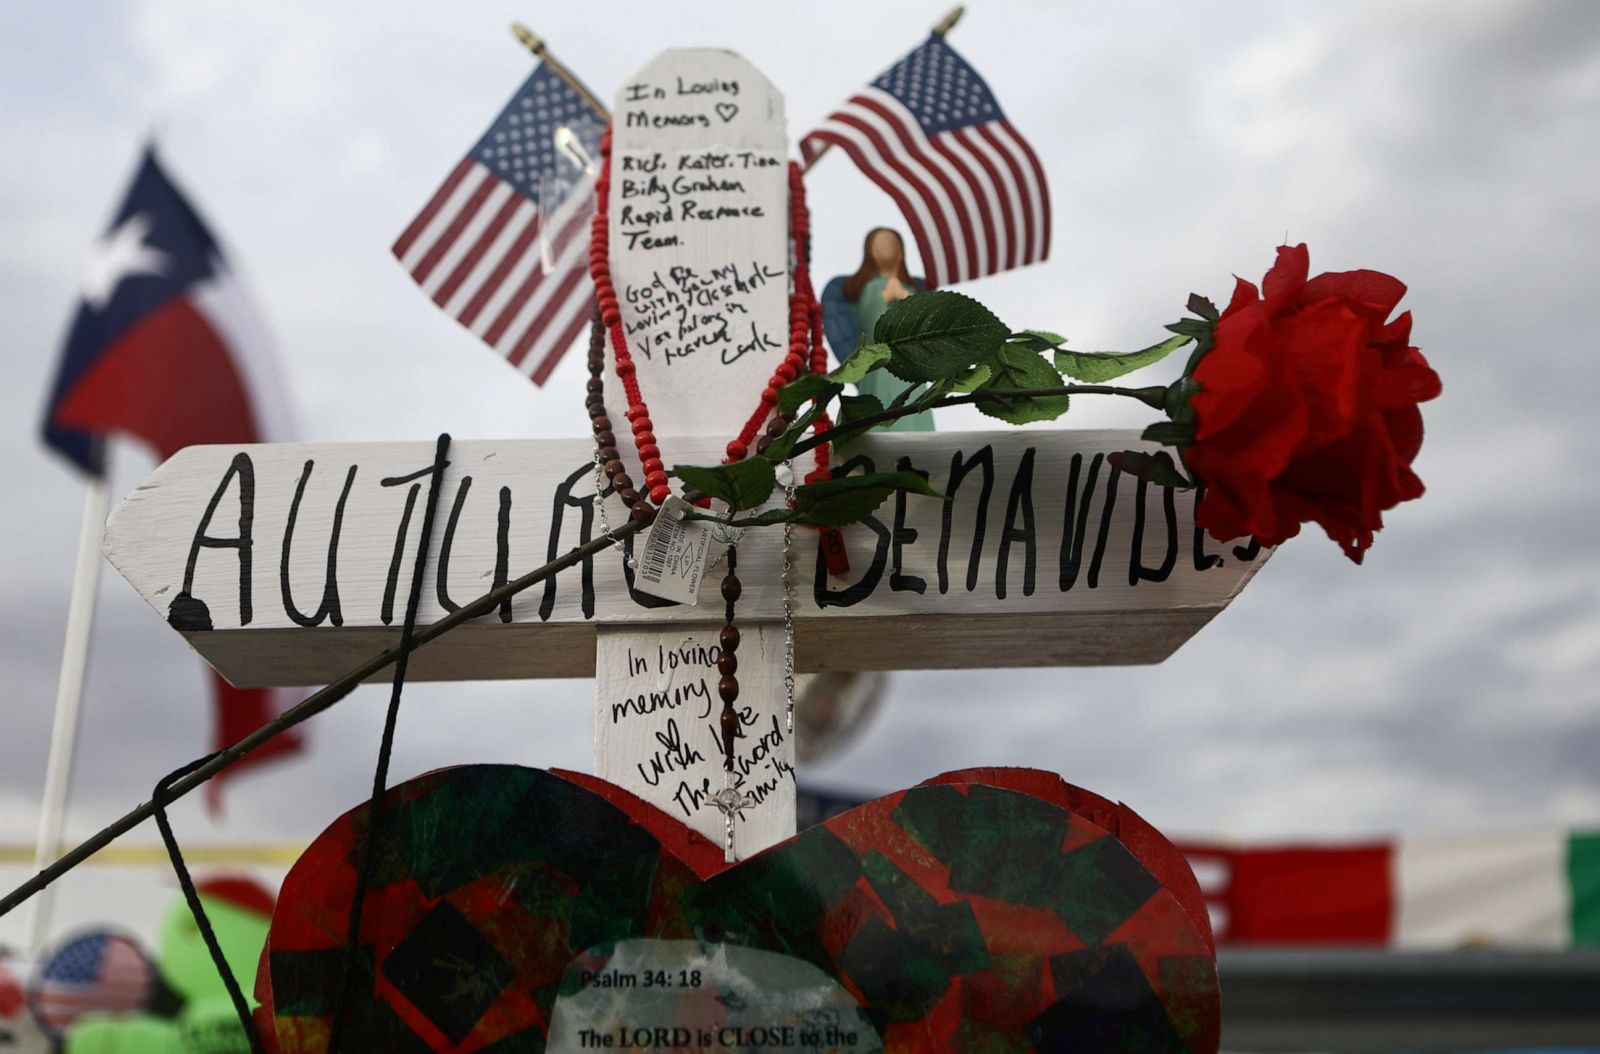 Victims of the Dayton and El Paso shootings remembered: 'I'm just